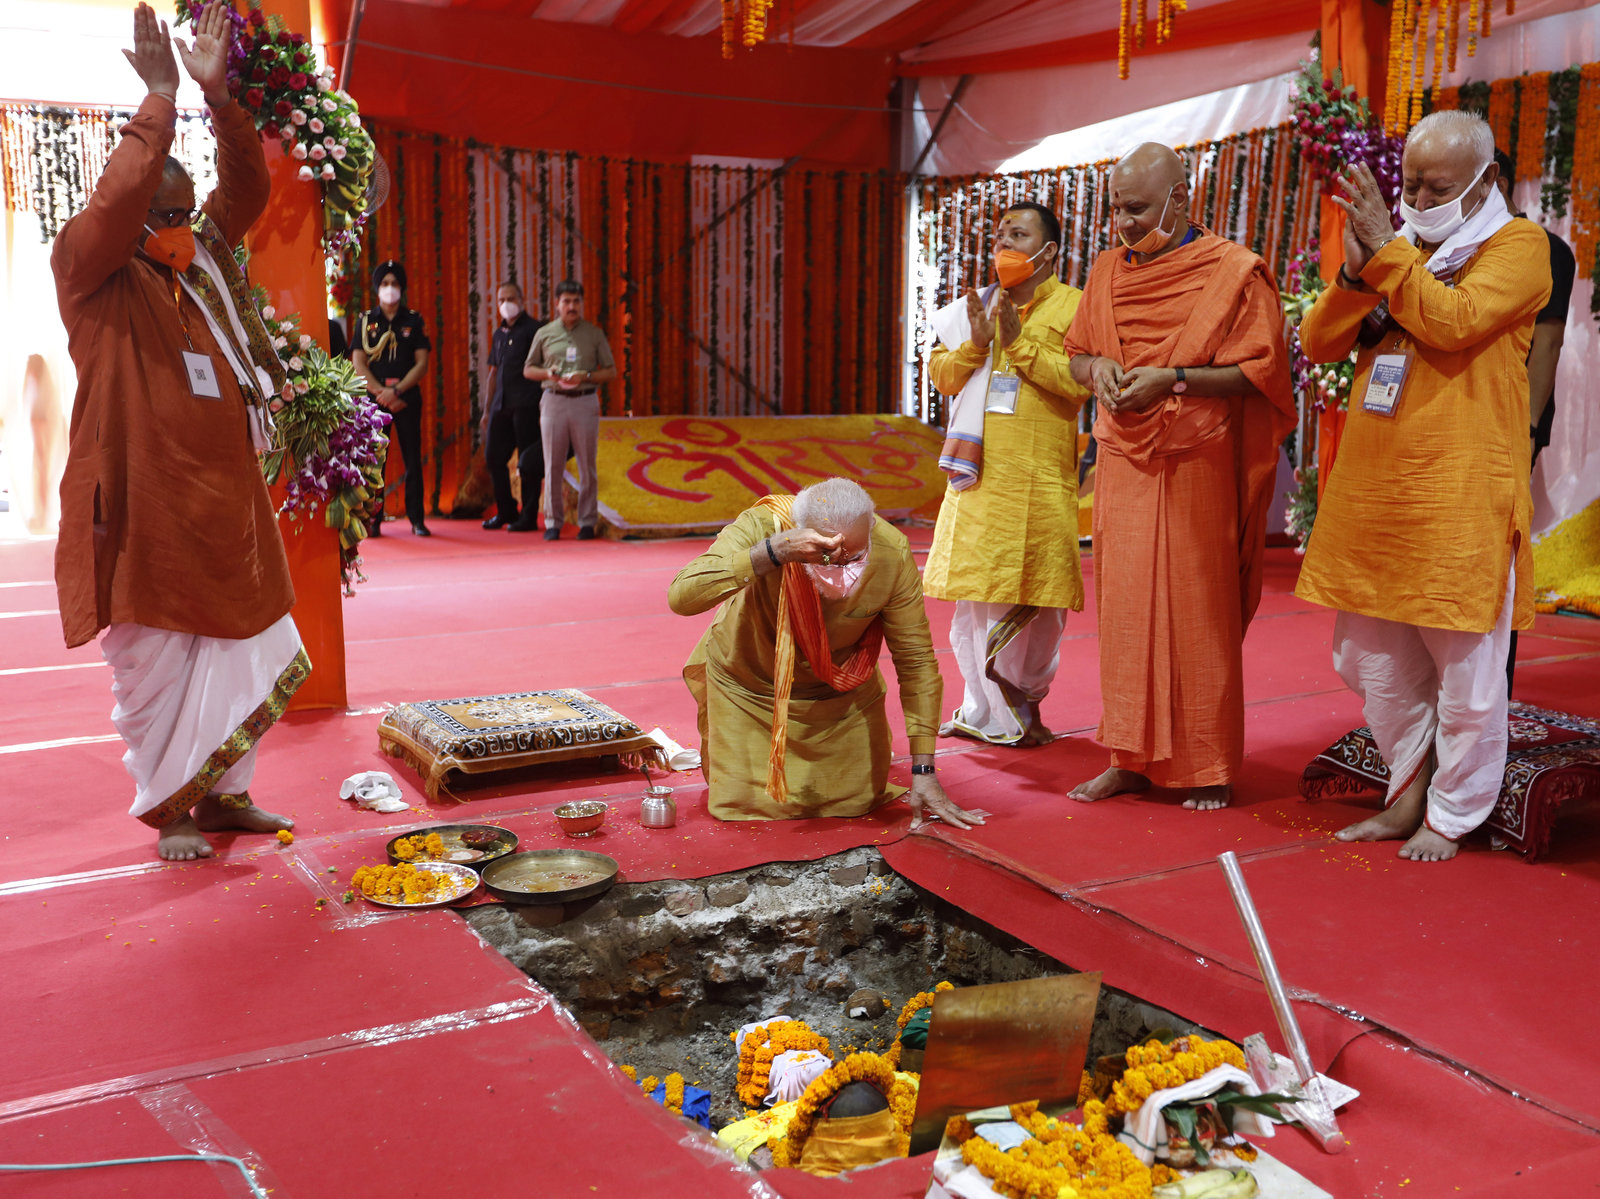 At Site Of Razed Mosque, India's Modi Lays Foundation For Controversial Hindu Temple